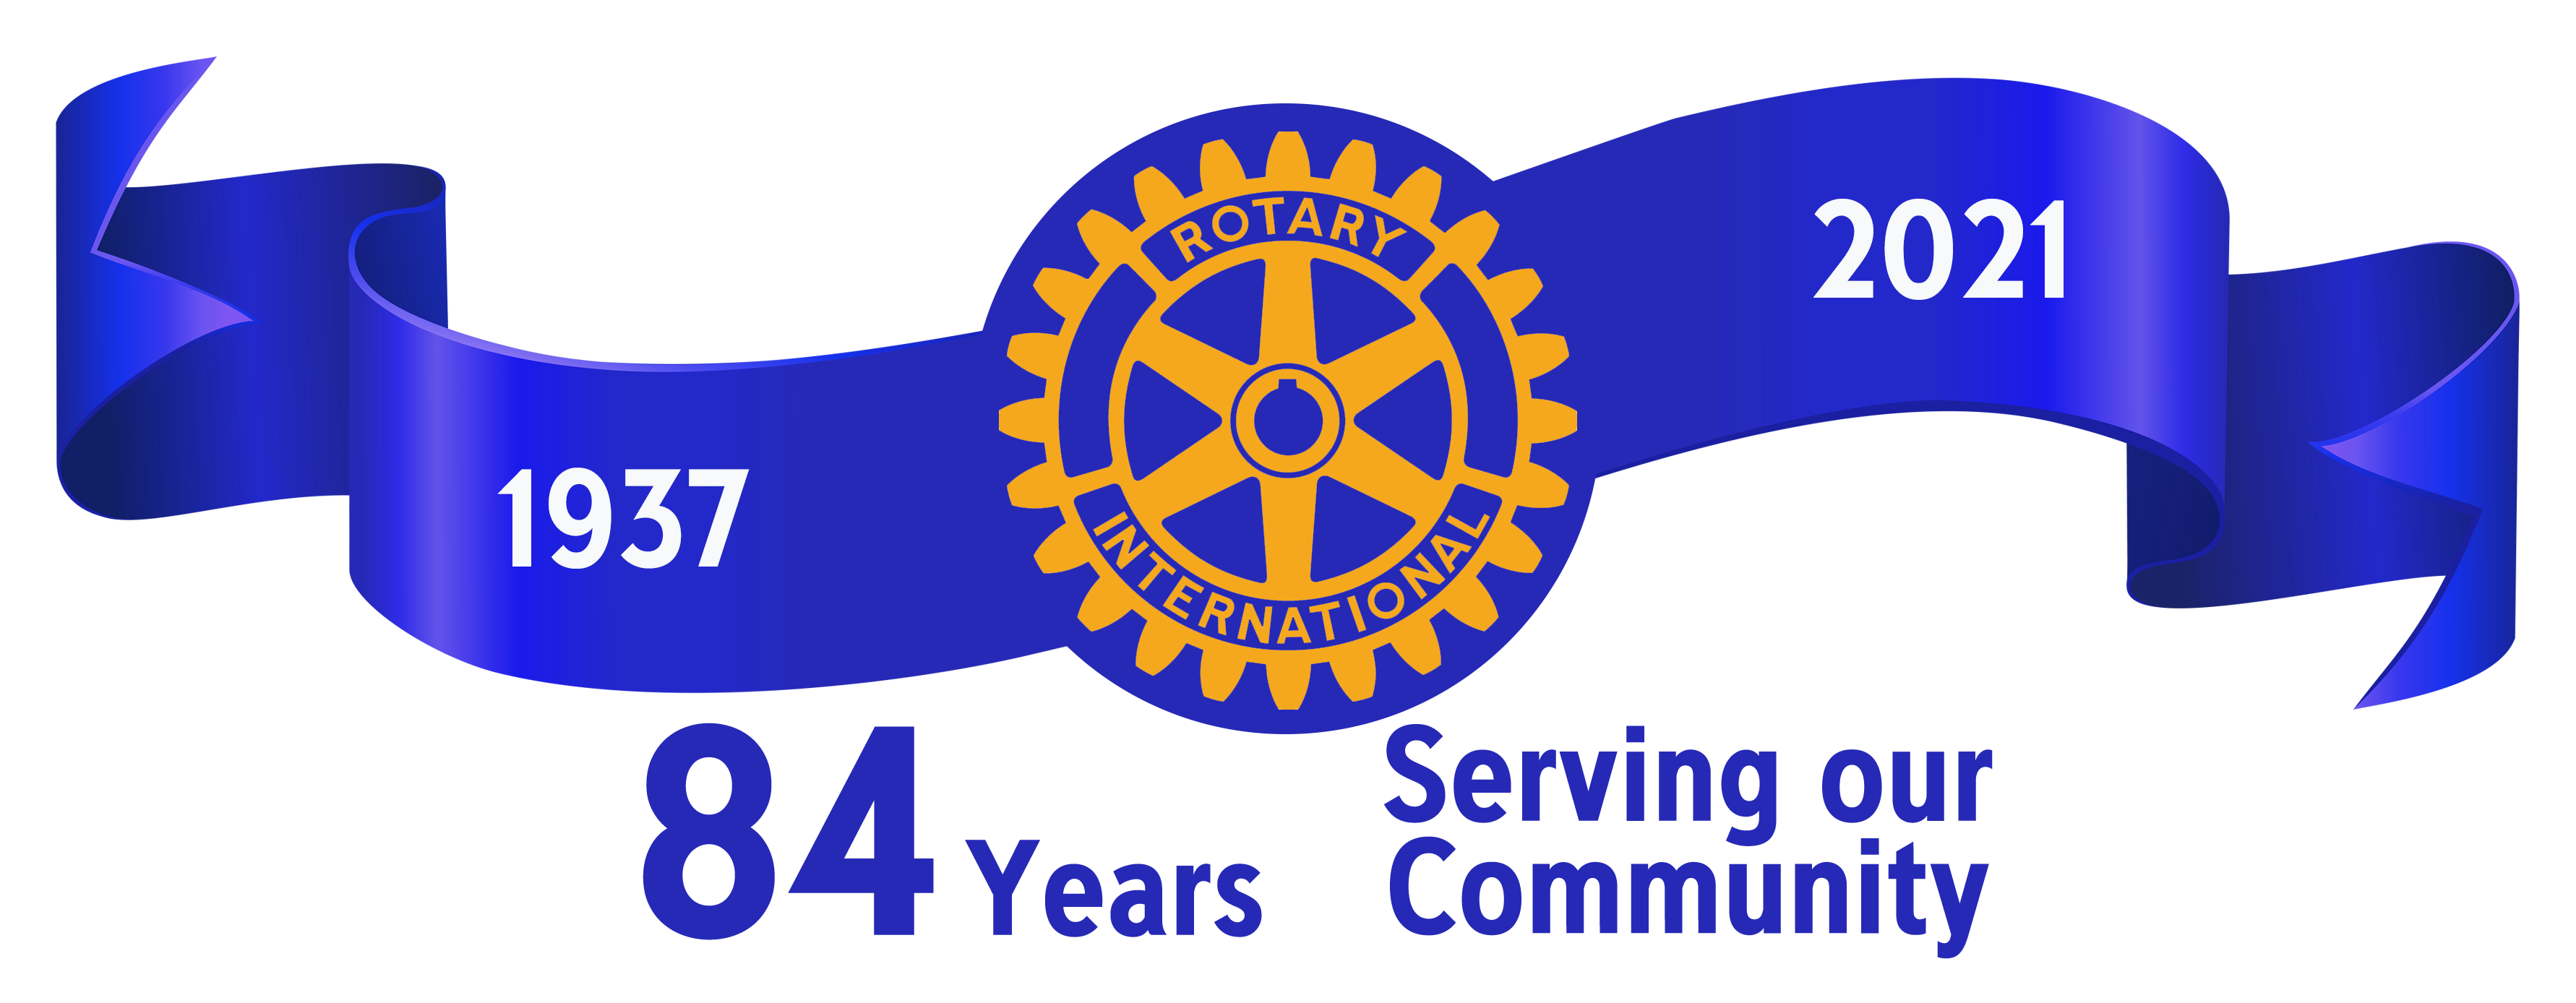 RCO 1937 to 2021. 84 Years serving our community.